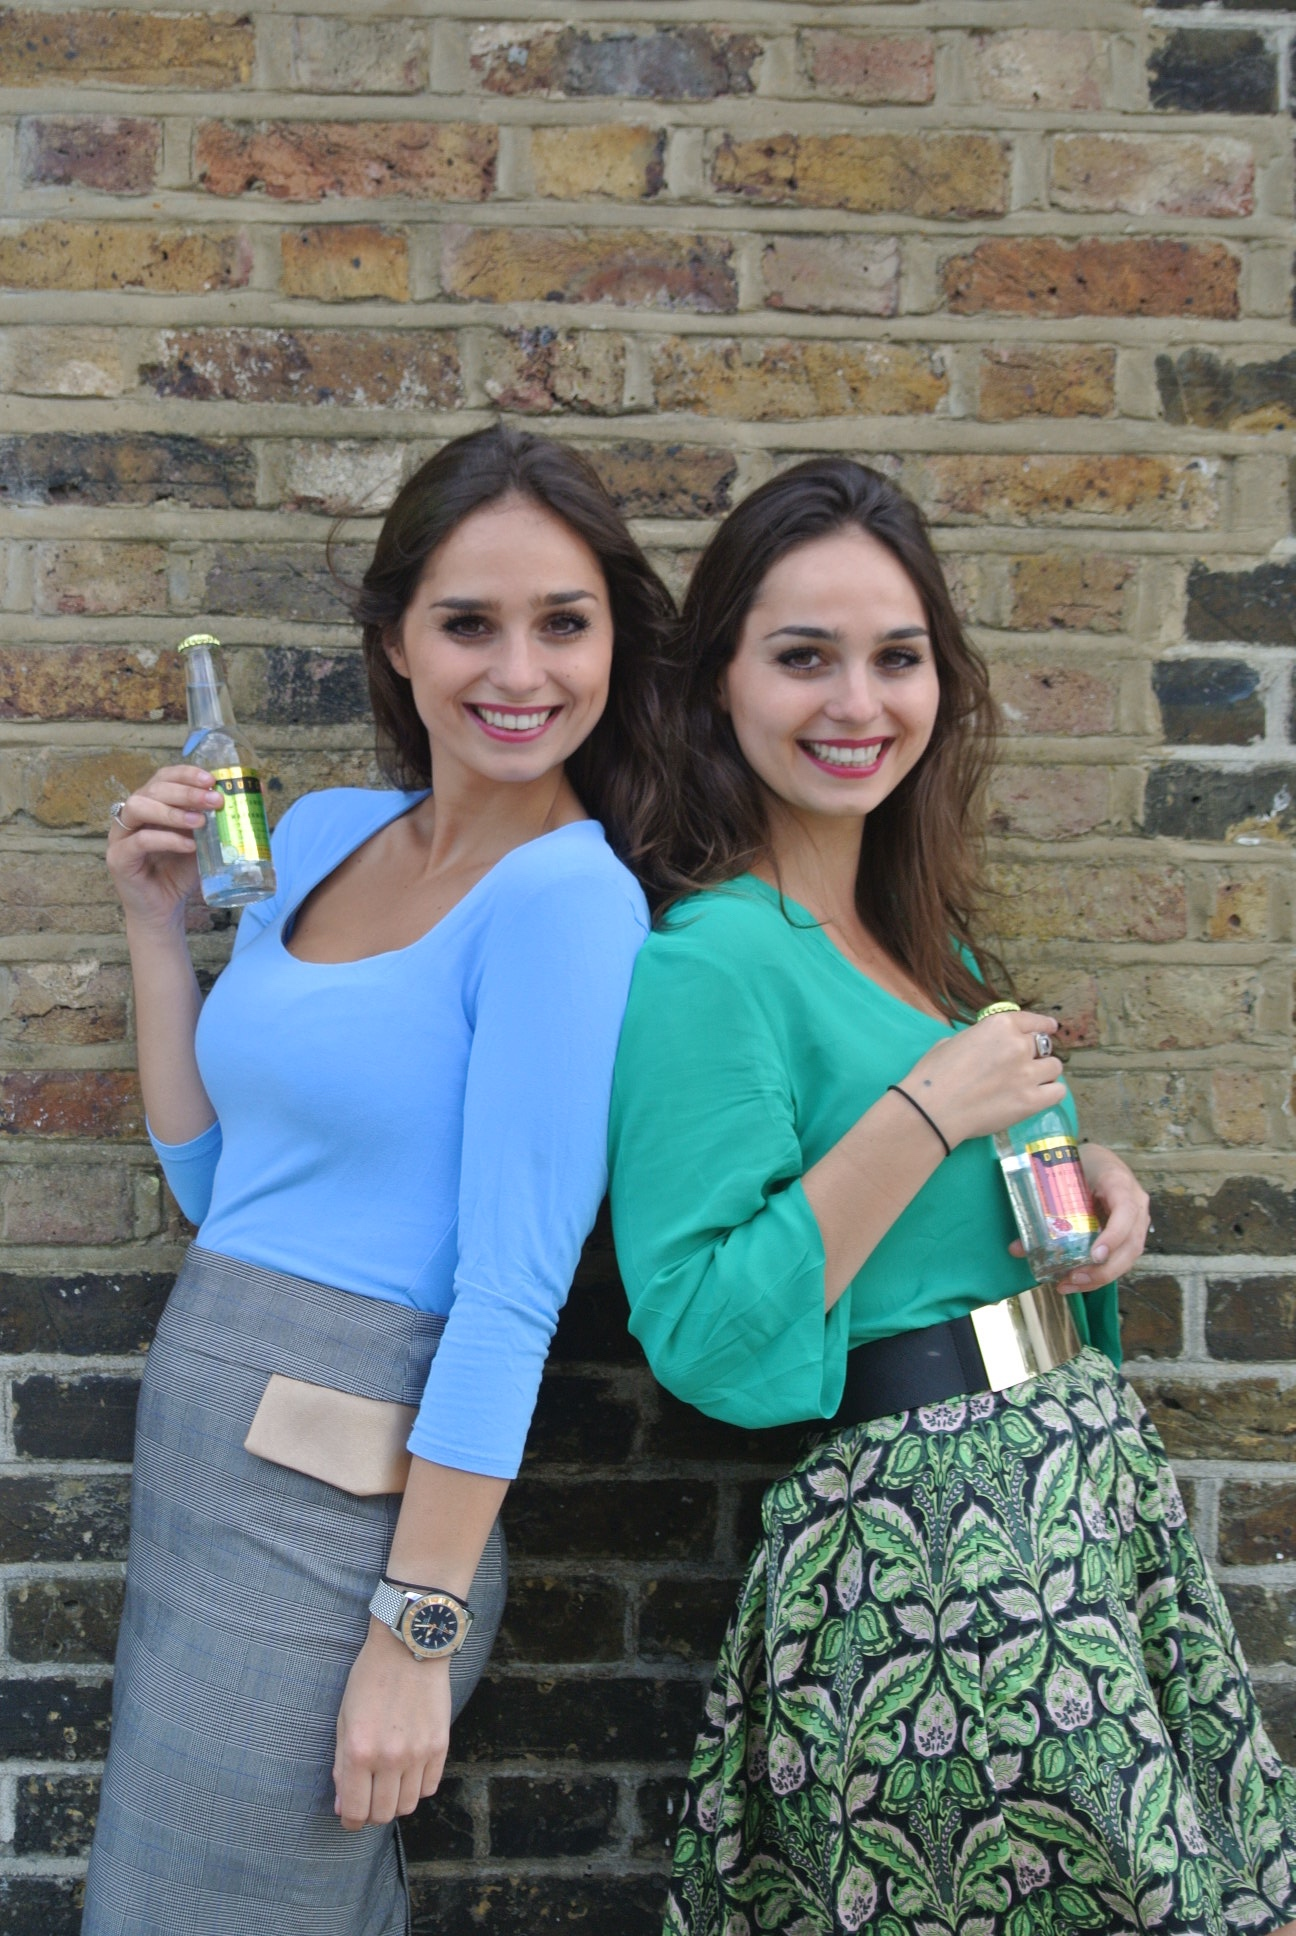 30 Digital Champions: The Dutch twin sisters building a British beverage business